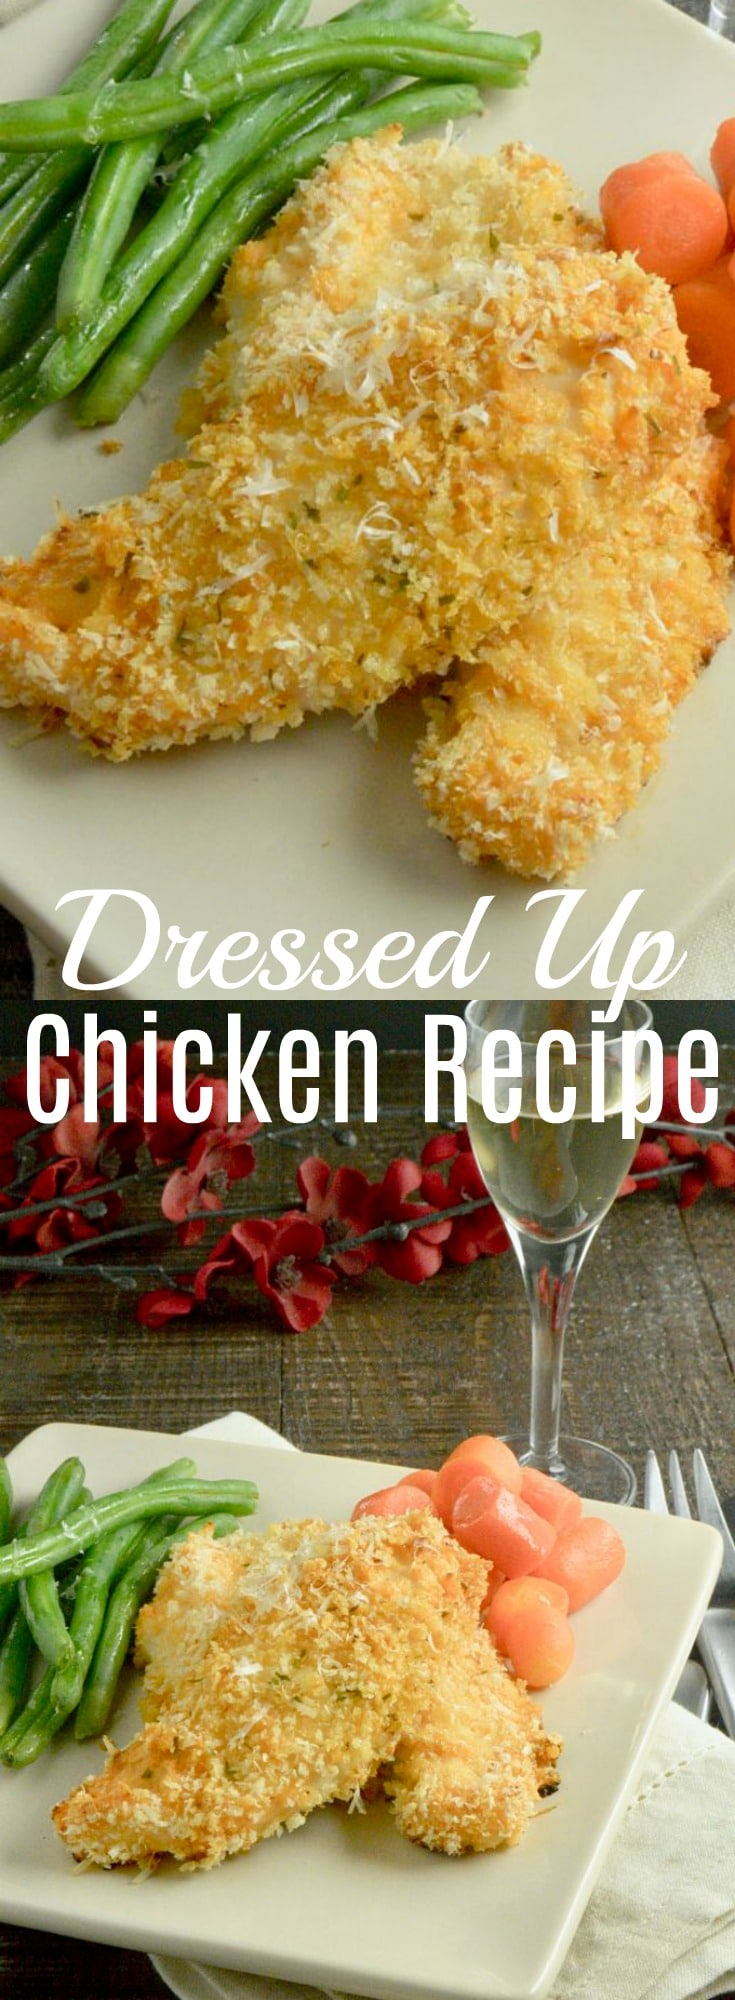 Dressed Up Chicken is an easy weeknight dinner recipe your family will love.  Its dipped in salad dressing, coated with parmesan herb panko and then baked until crispy.  Both kids and adults alike will enjoy it!